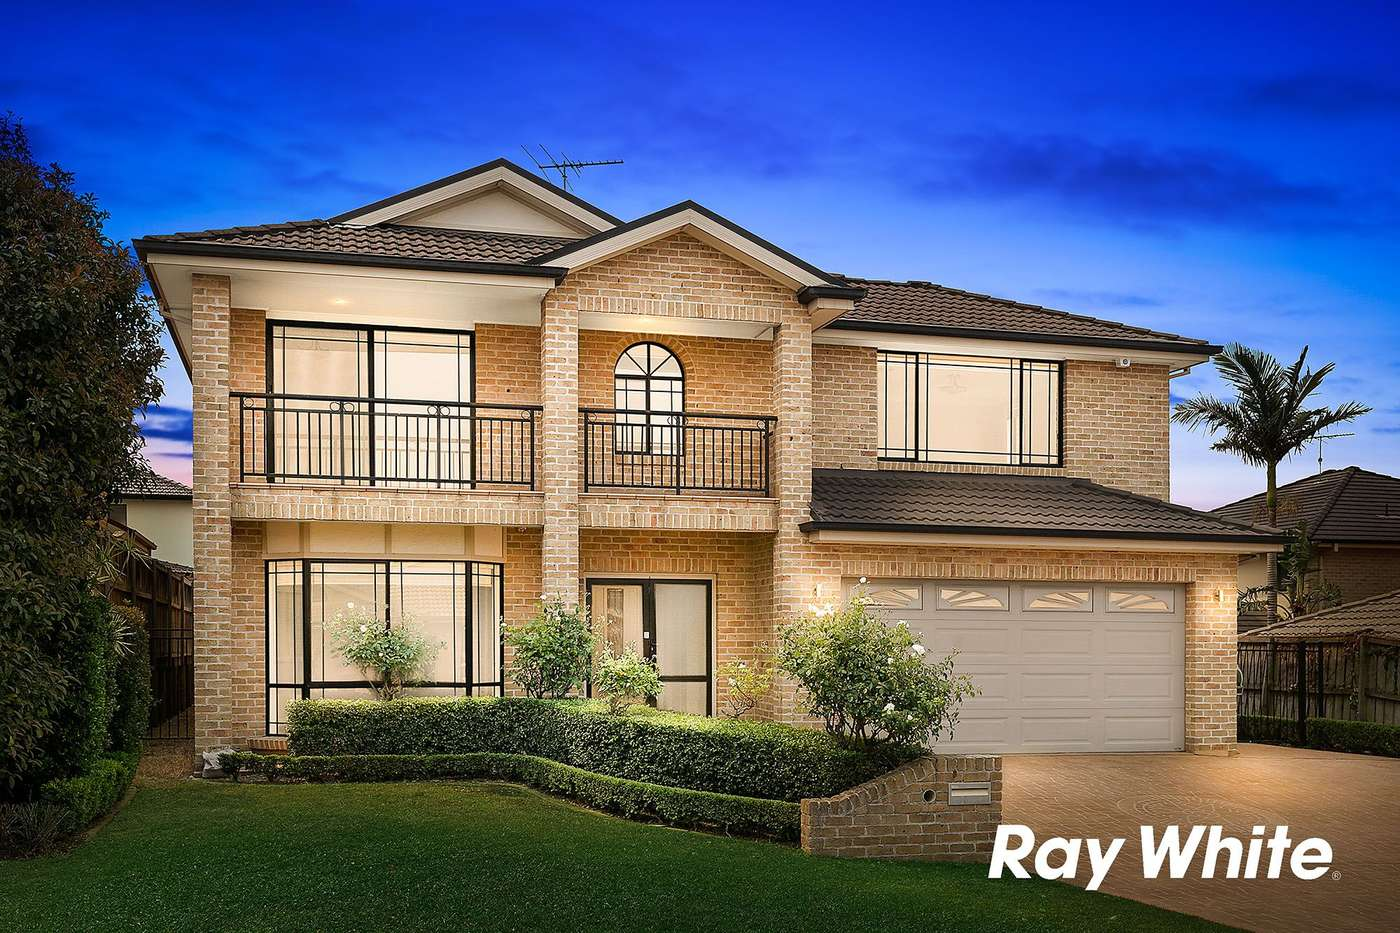 Main view of Homely house listing, 3 Lucette Place, Castle Hill, NSW 2154